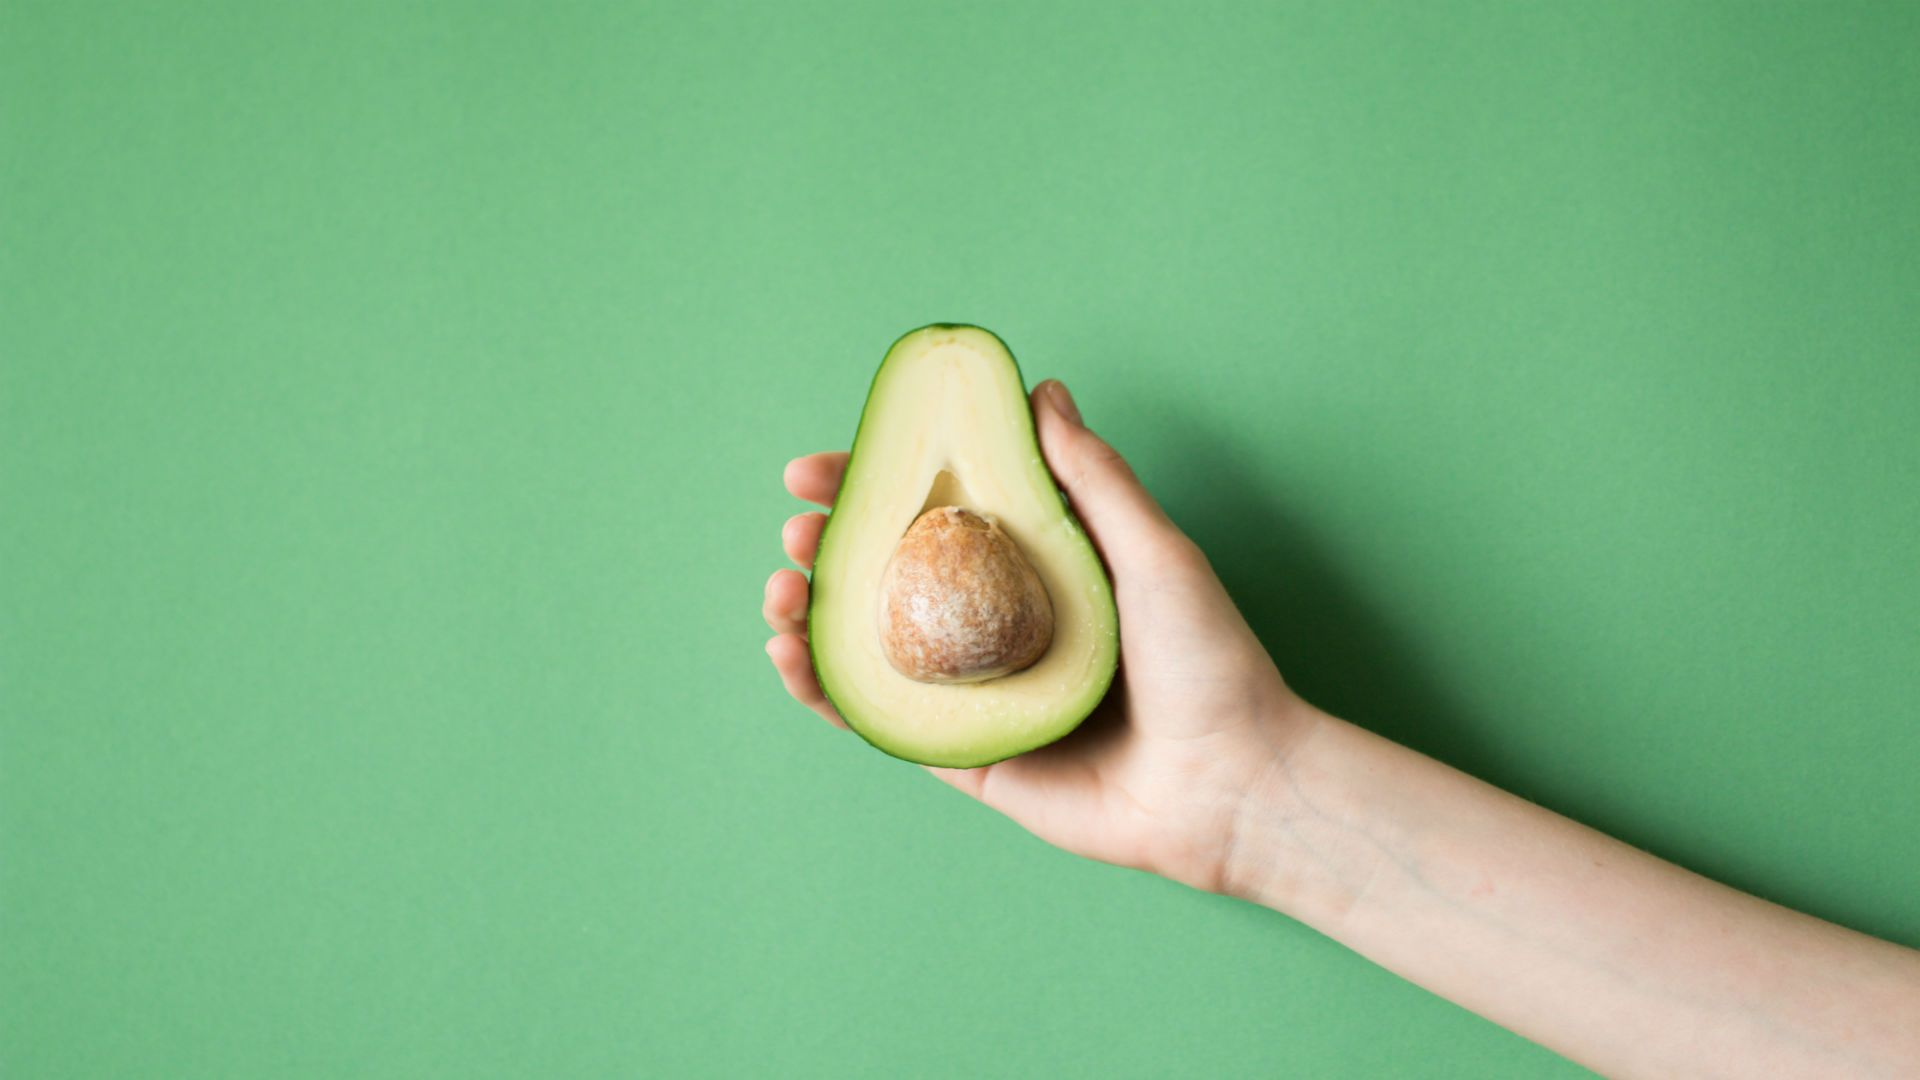 Avocado good wallpaper hd